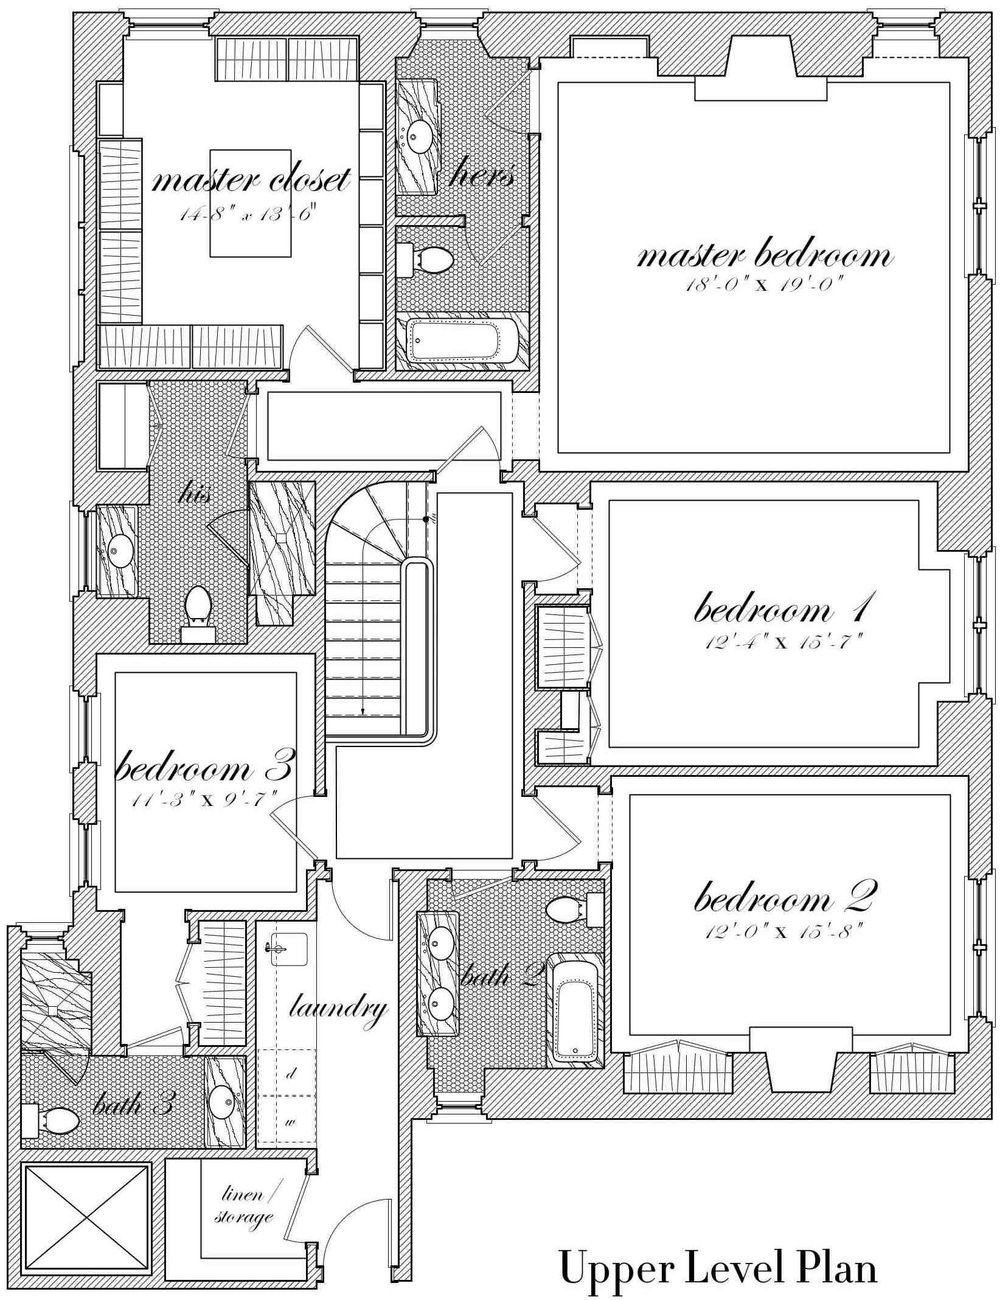 2 925 PARK AV UPPER LEVEL PLAN PHOTO WEBSITE 2018.jpg